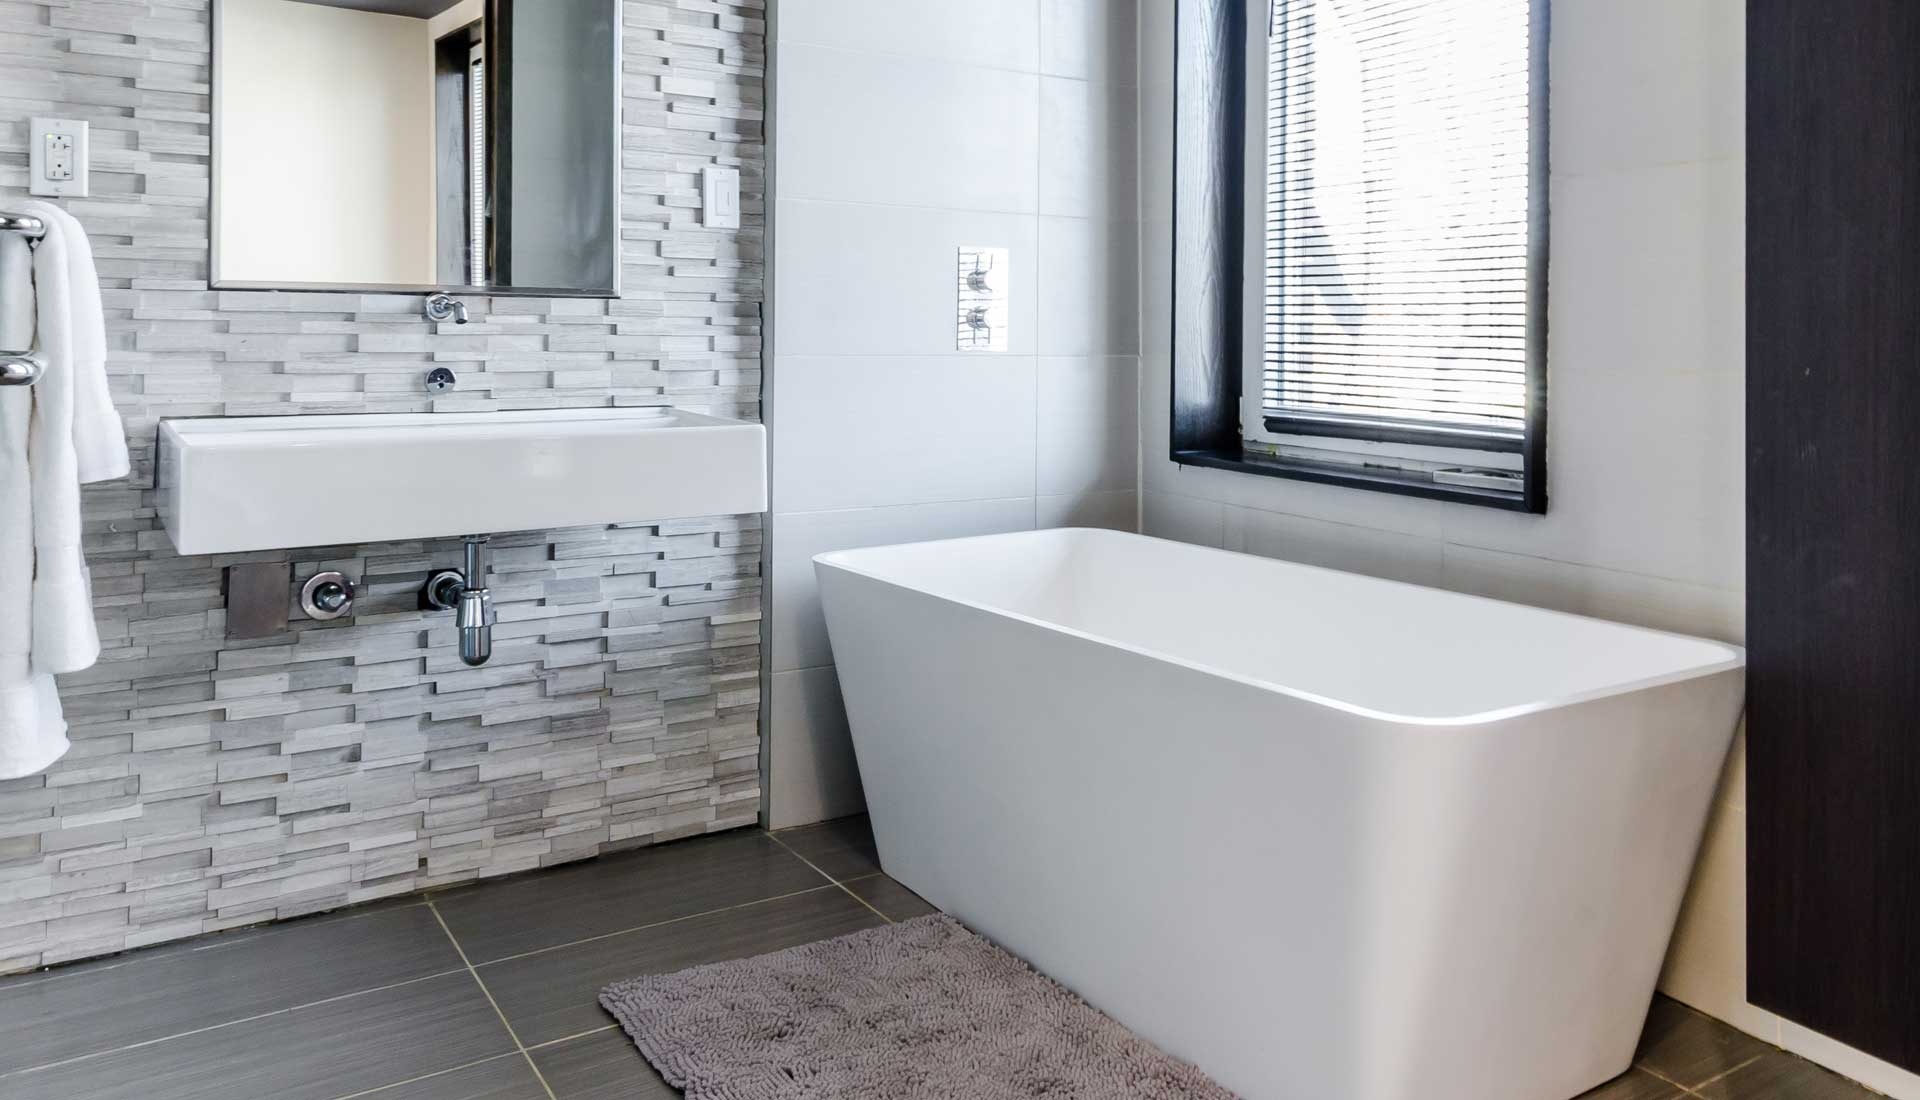 White bathub in bathroom under window with white blinds sits beside modern white sink with a grey tile backsplash